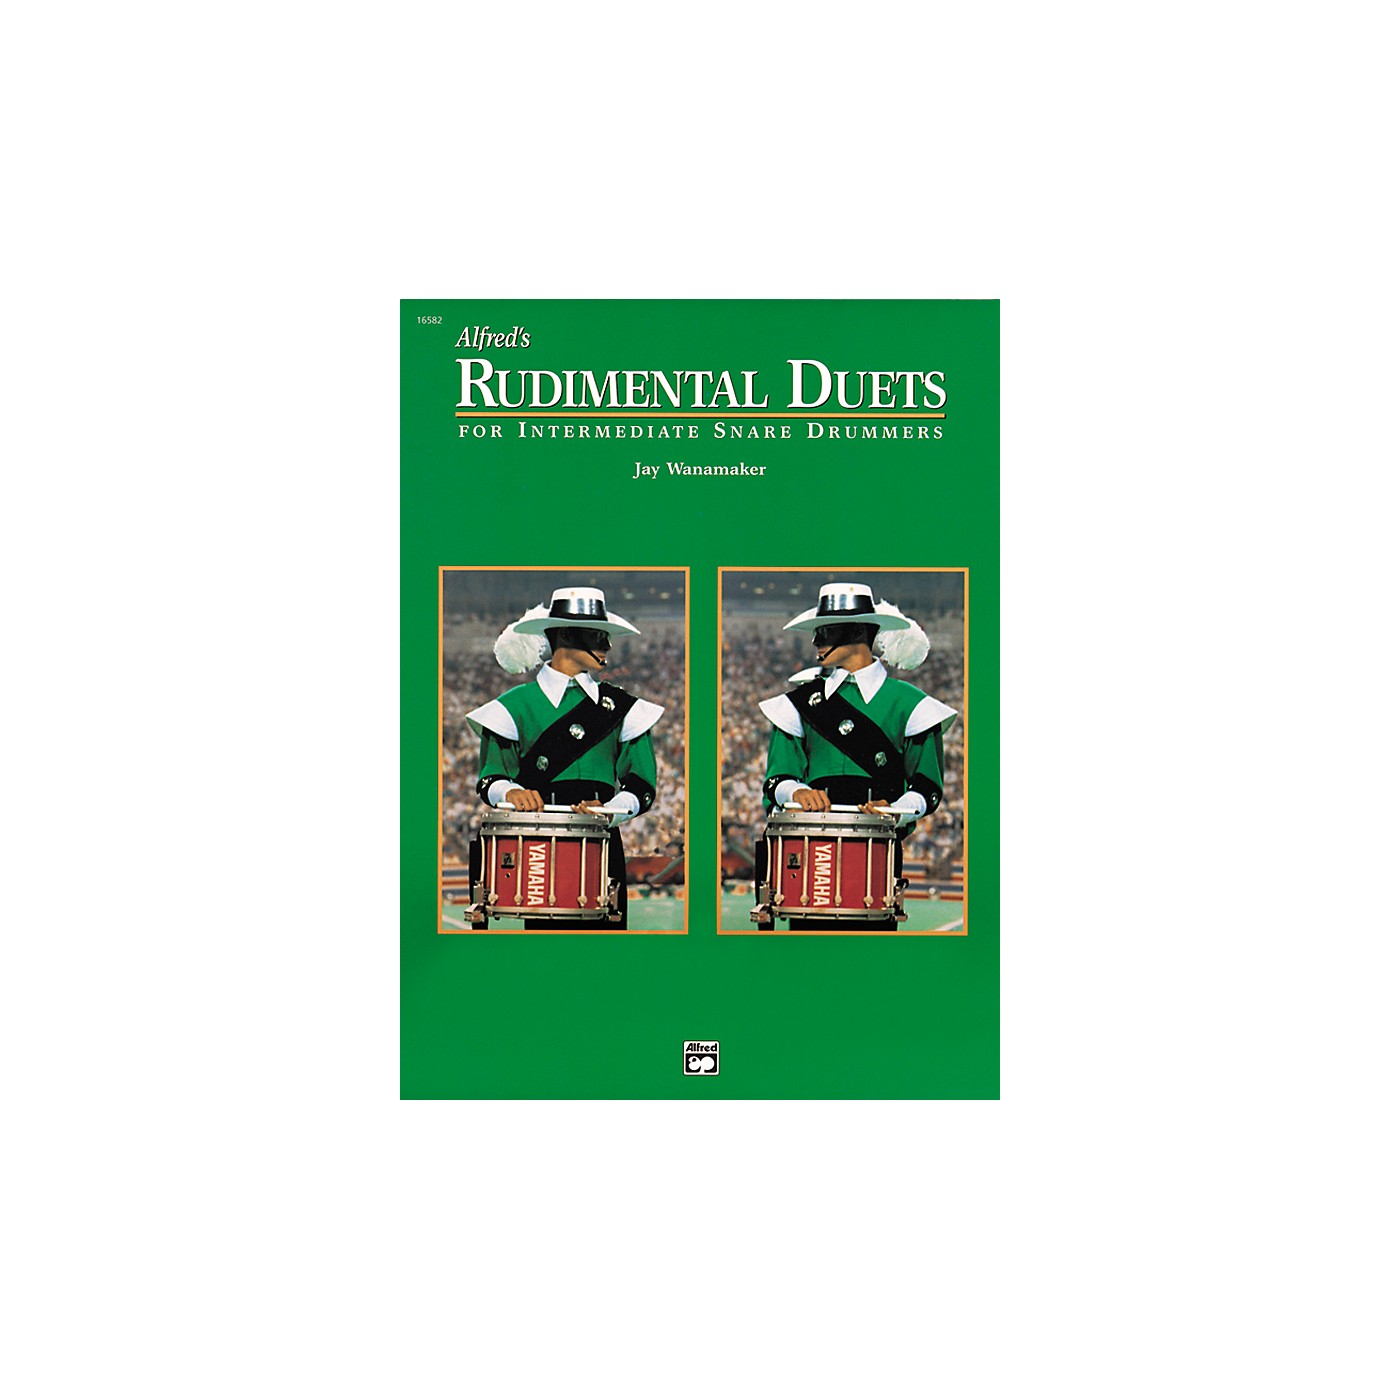 Alfred Rudimental Duets For Intermediate Snare Drummers Book thumbnail